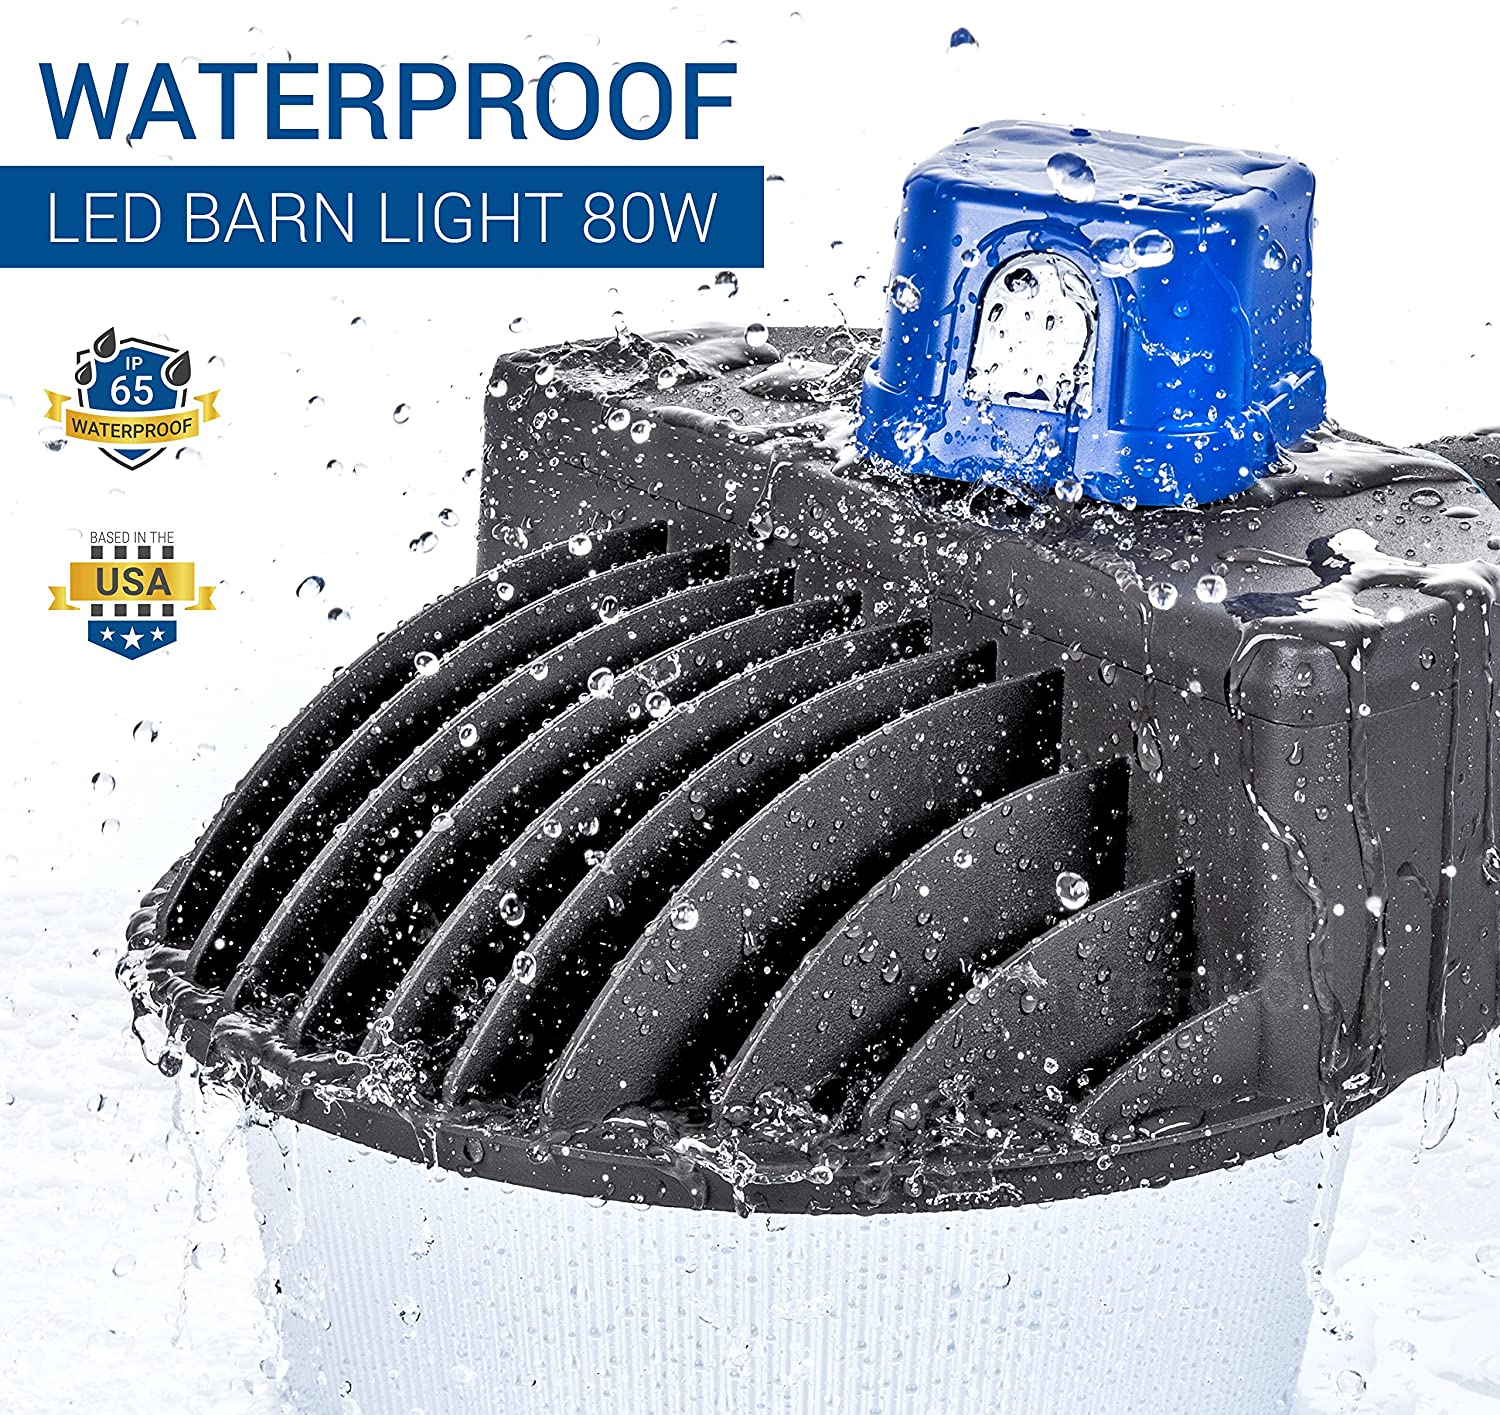 Bright Security area flood light for yard and garden 5000K Crystal White 8000 Lumens Waterproof 80W Hyperikon Outdoor LED Barn Light Dusk to Dawn with Photocell 400W Equivalent